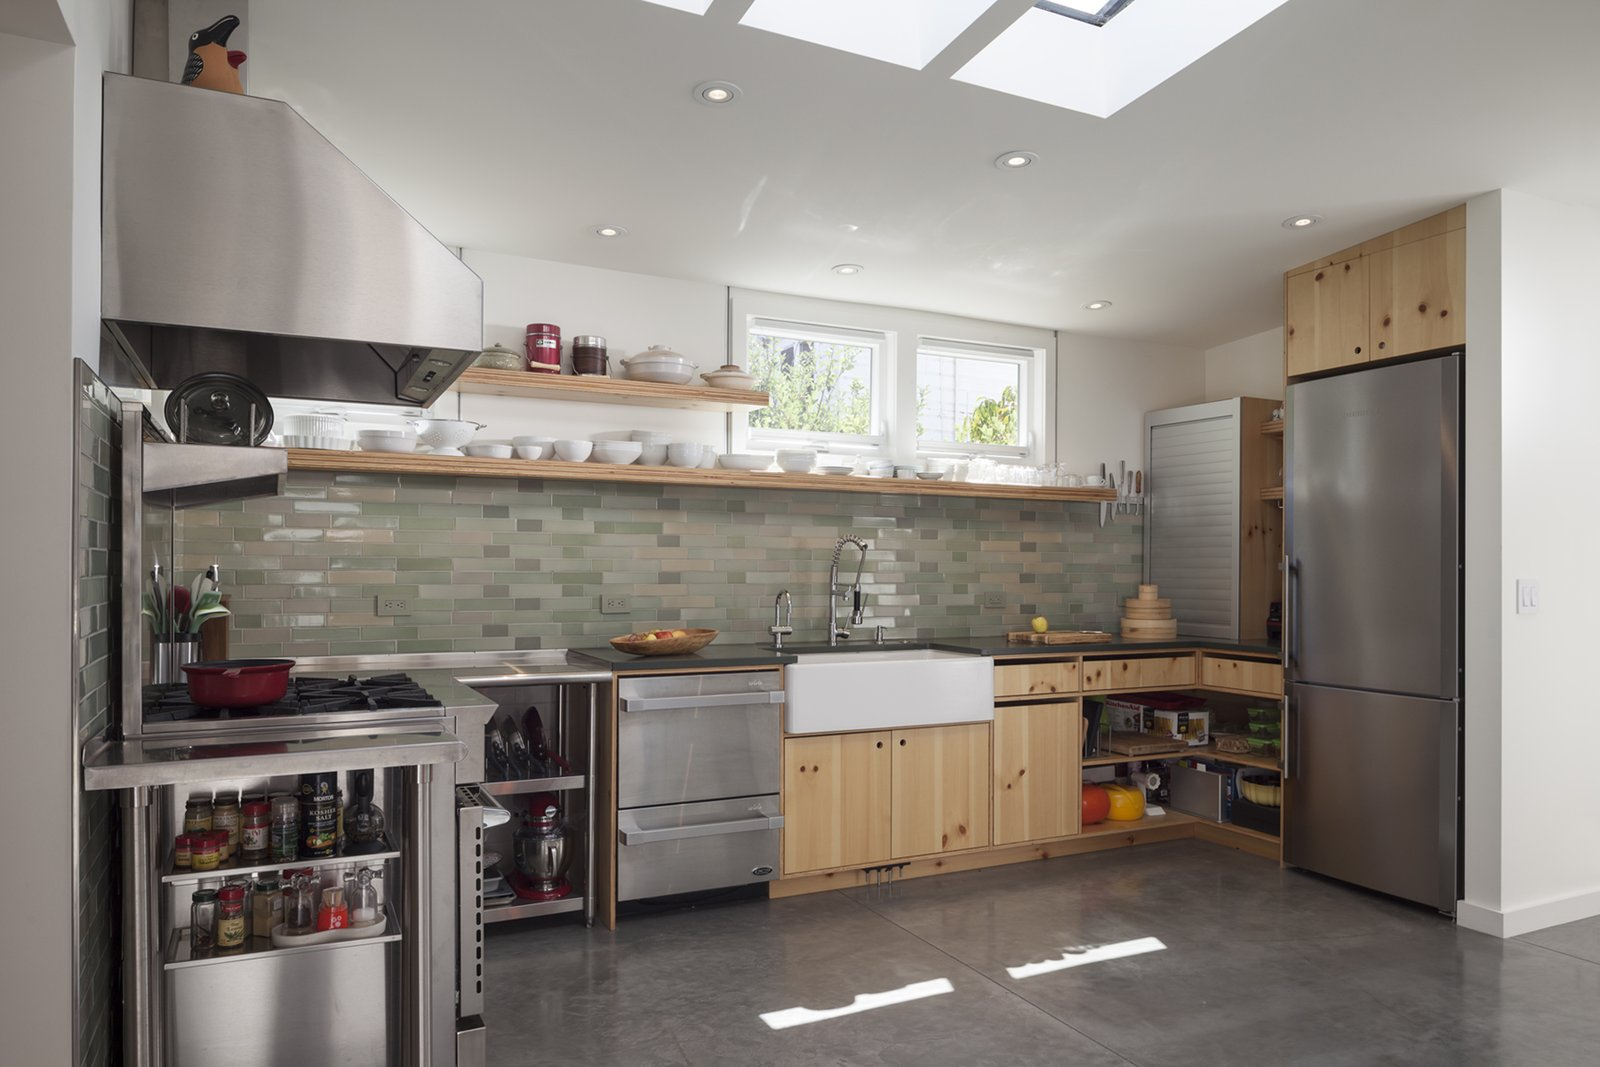 Tagged: Kitchen, Granite Counter, Metal Counter, Wood Cabinet, Concrete Floor, Glass Tile Backsplashe, Recessed Lighting, Range, Drop In Sink, Refrigerator, and Range Hood.  Shotwell Residence by Todd Davis Architecture